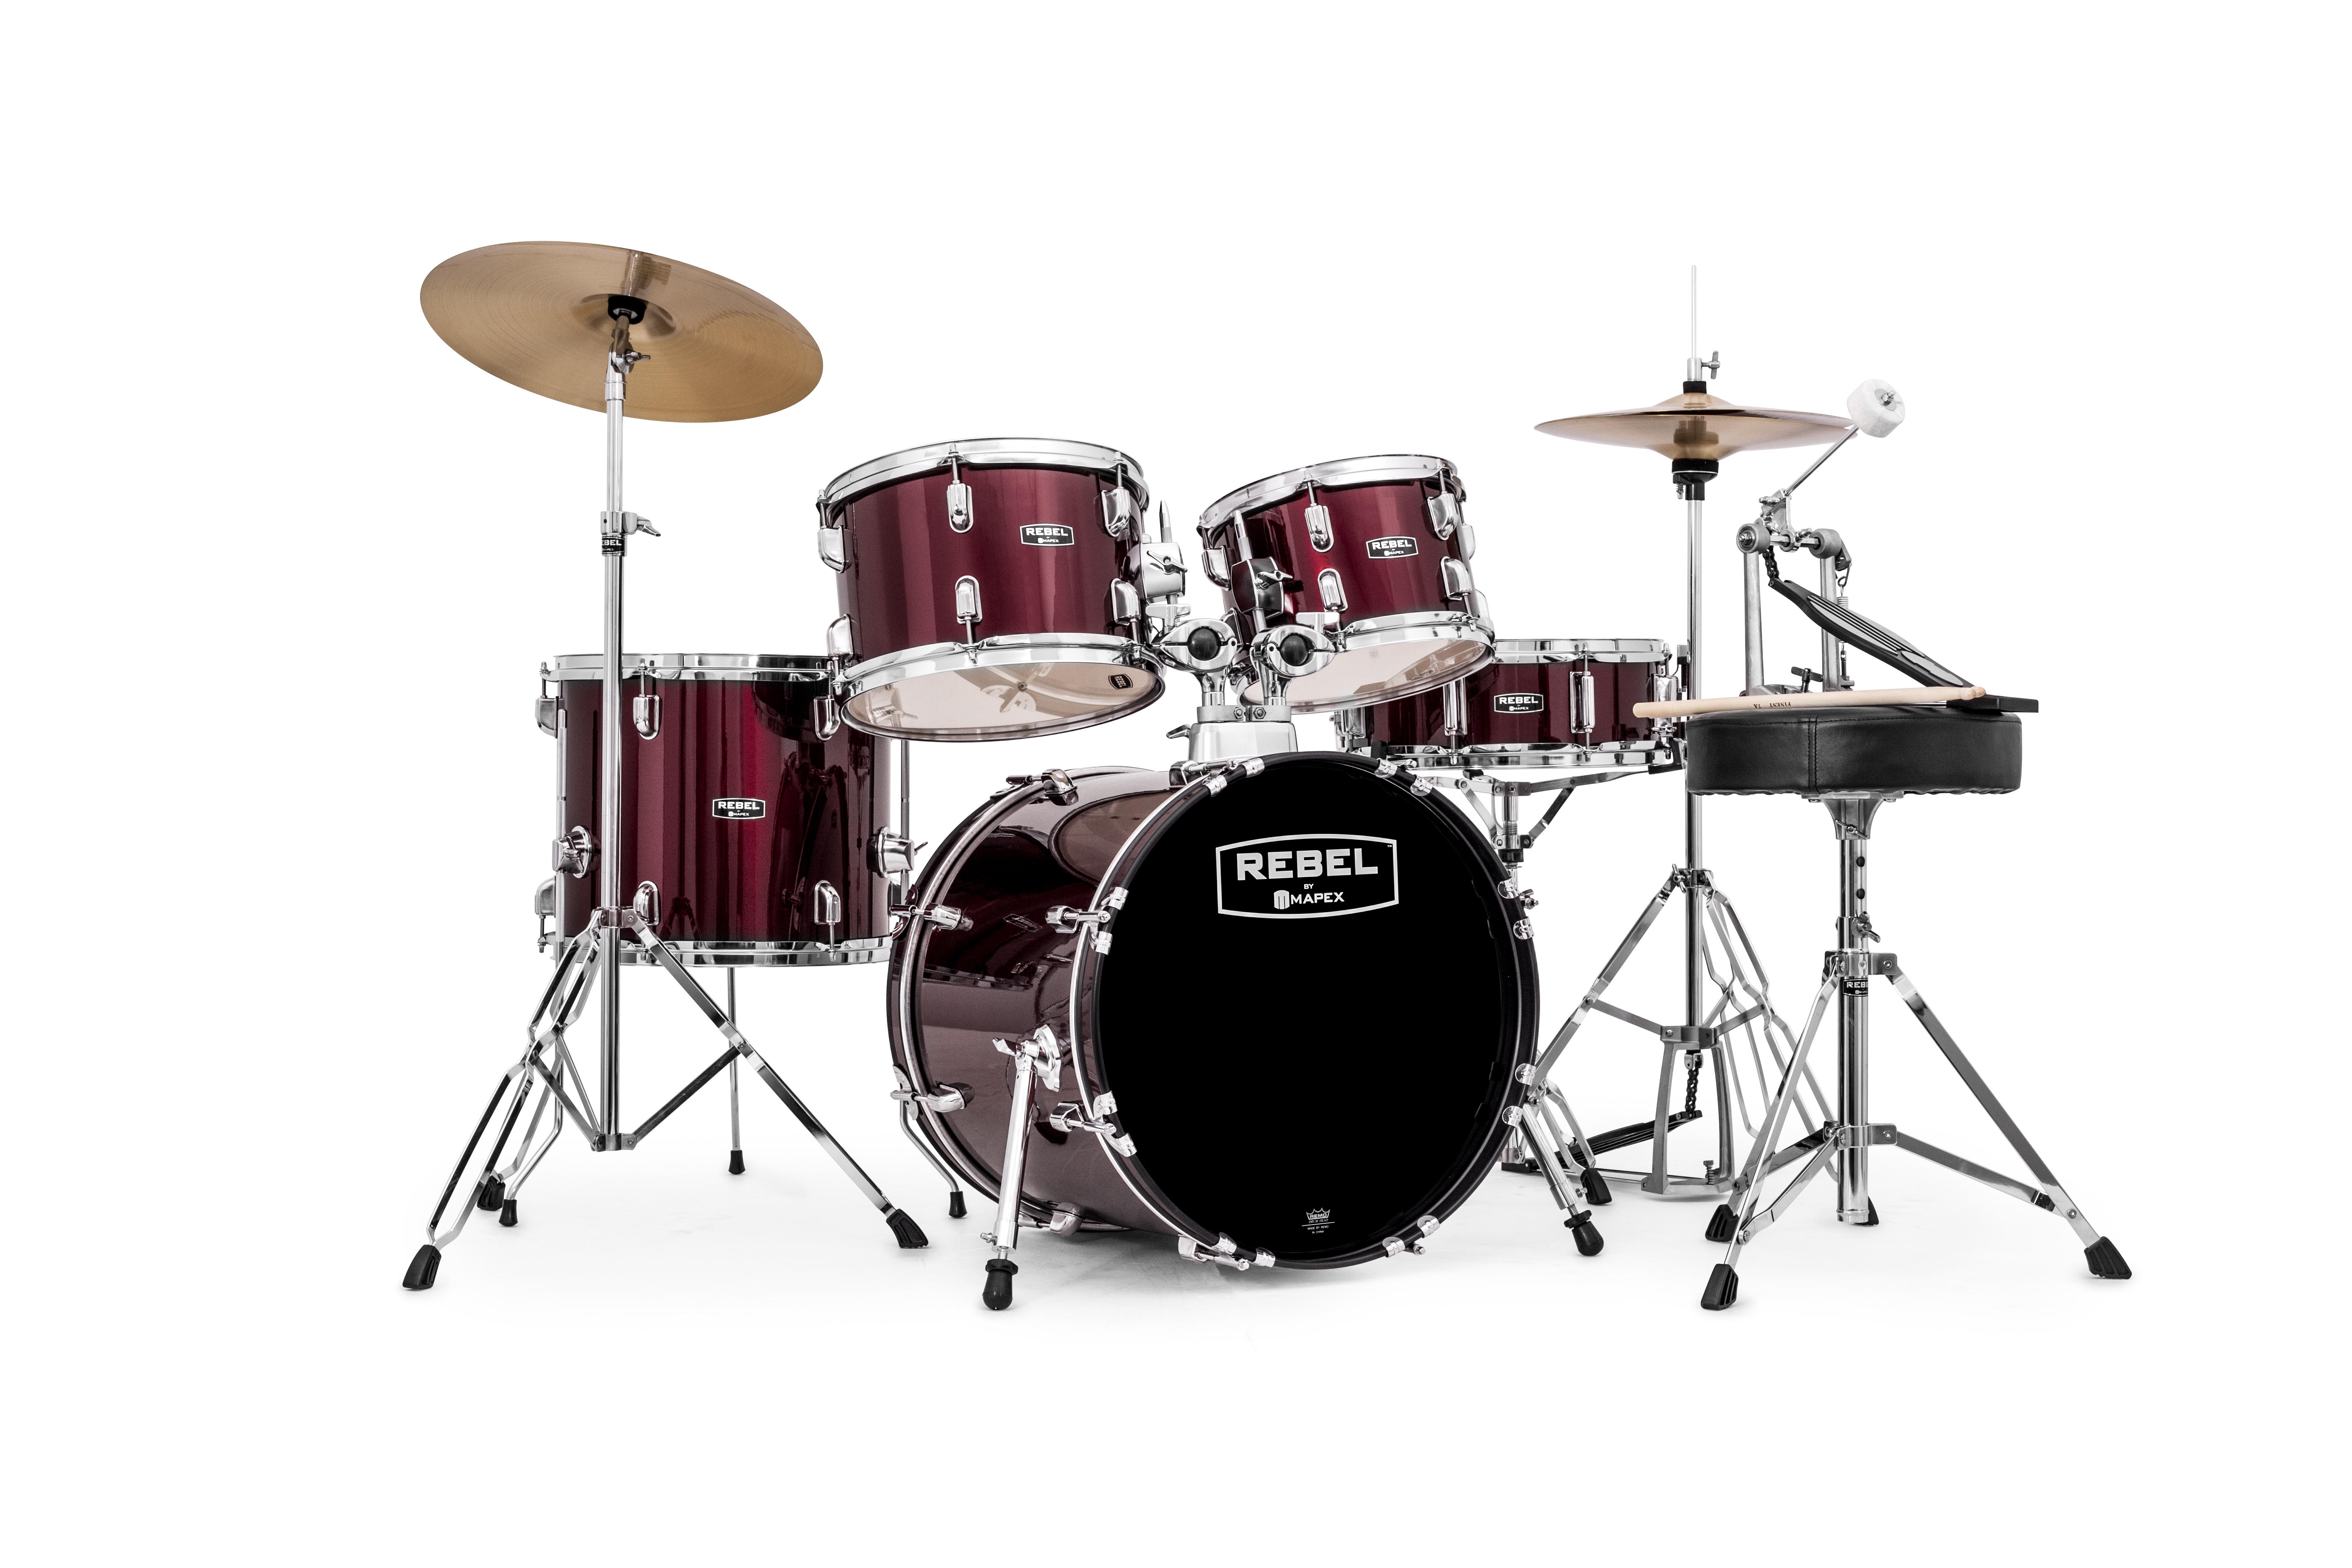 Mapex Rebel 5-piece Complete Junior Set Up with Fast Size Toms - RB5844FTCDR - Dark Red